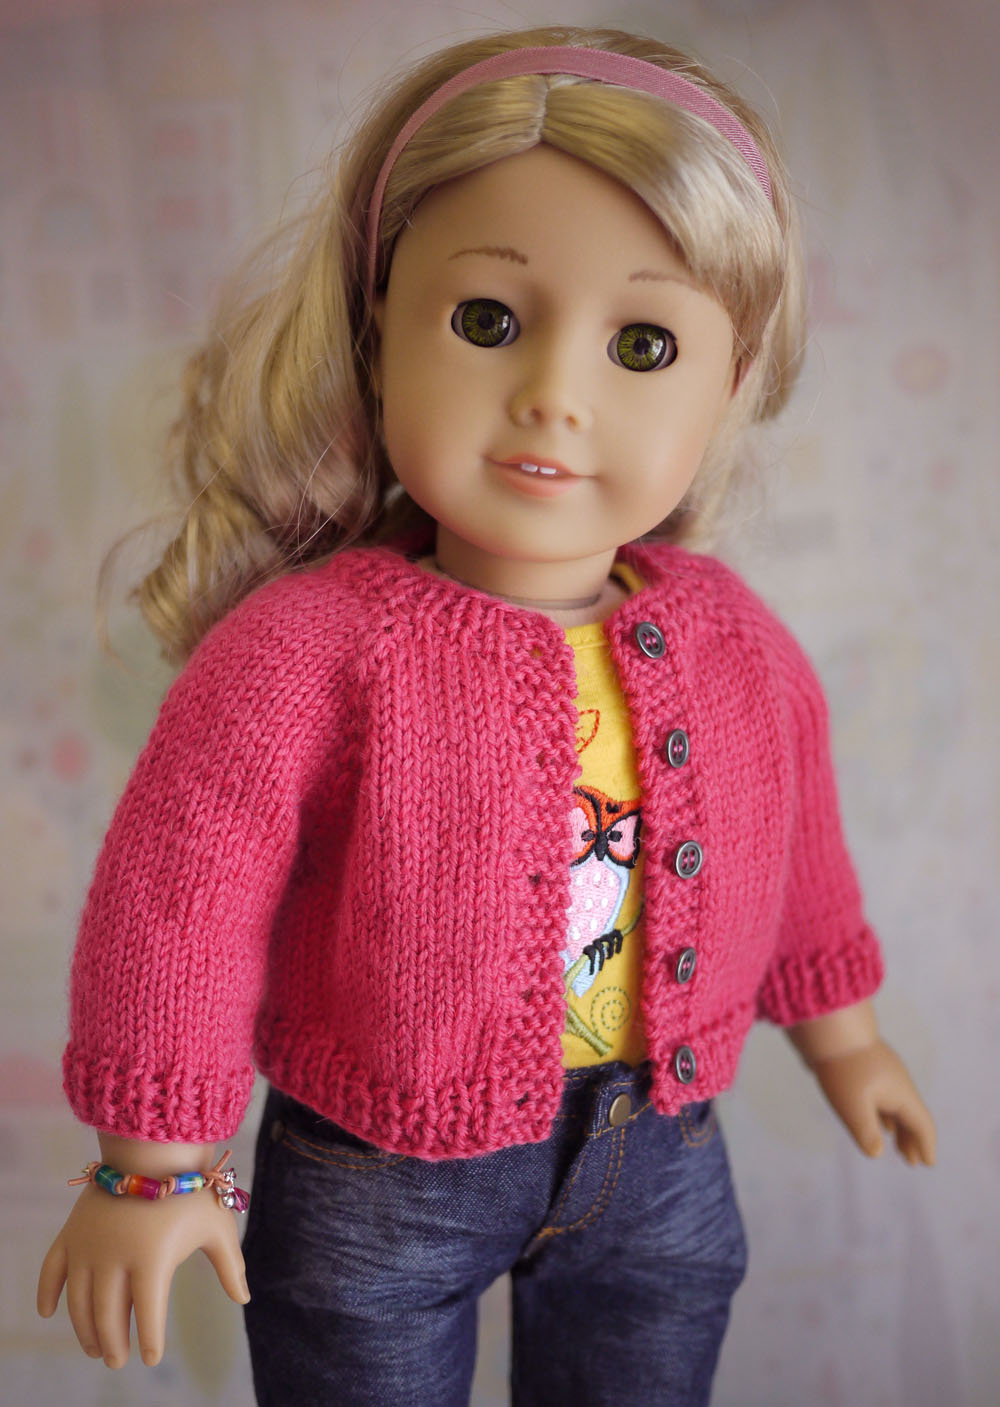 Knitting Pattern Cardigan Girl : free knitting patterns for american girl doll - Music Search Engine at Search...